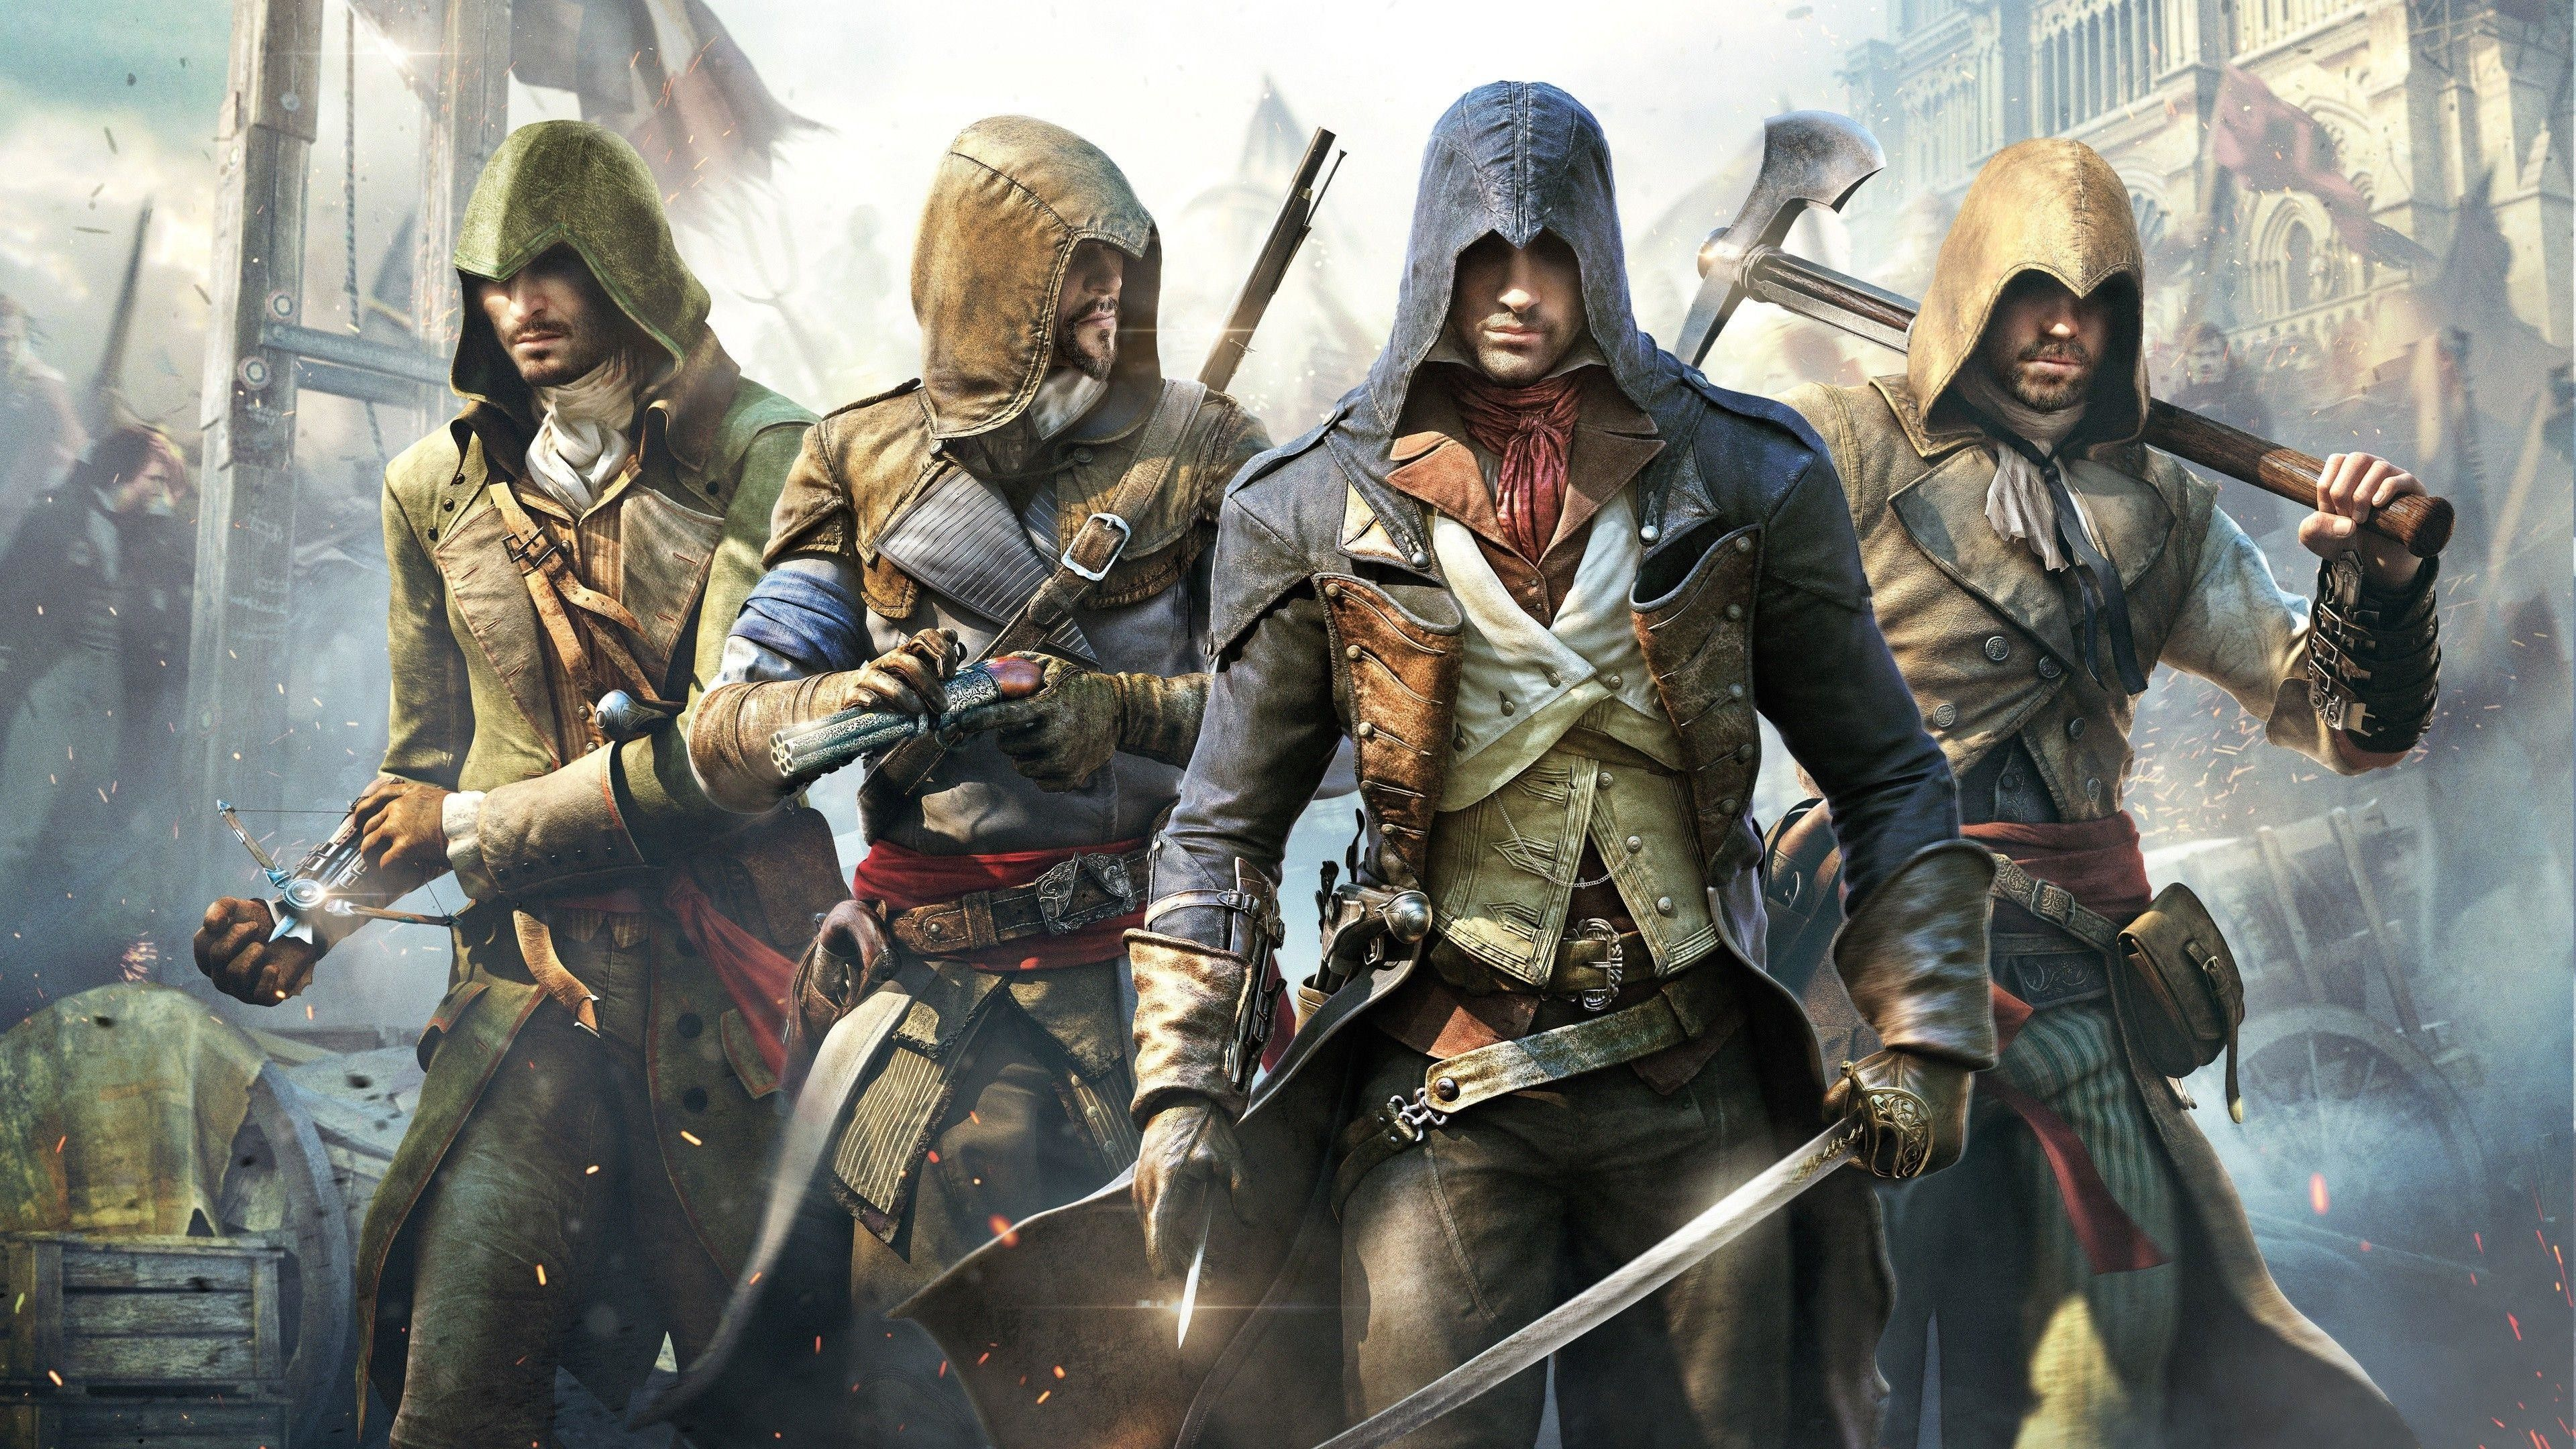 Assassin S Creed Unity Wallpapers Top Free Assassin S Creed Images, Photos, Reviews